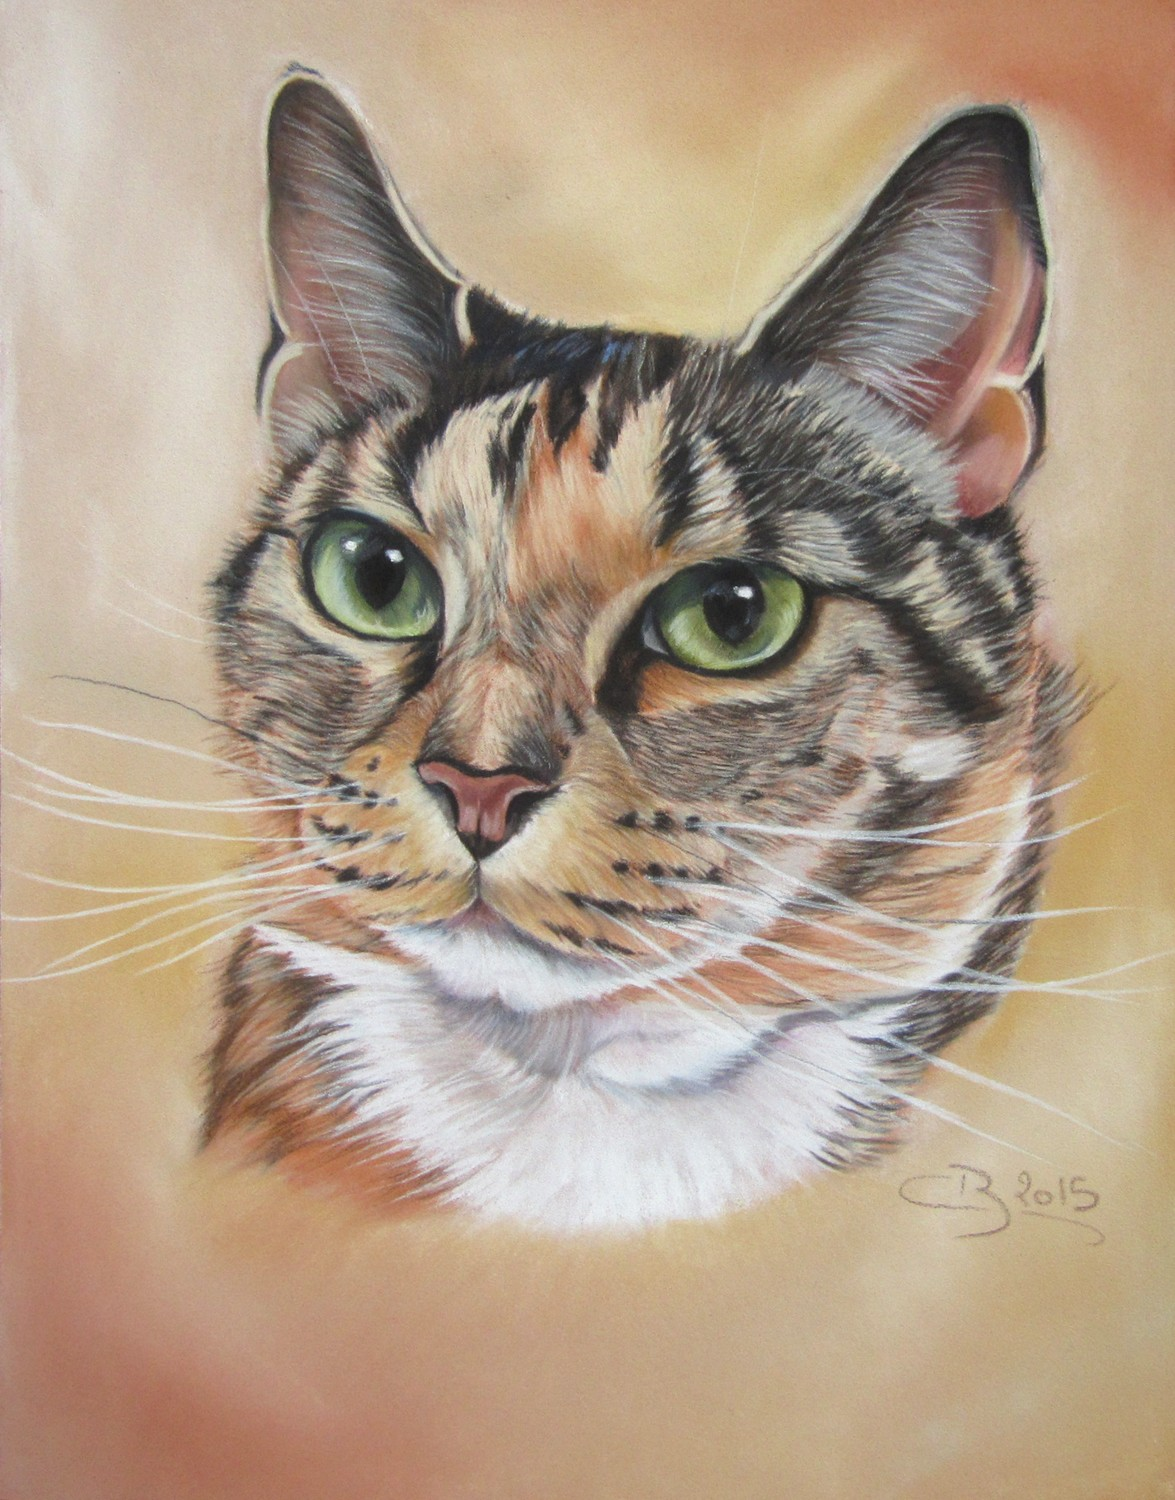 dessin et peinture vid o 1572 portrait de chat aux pastels secs le blog de. Black Bedroom Furniture Sets. Home Design Ideas